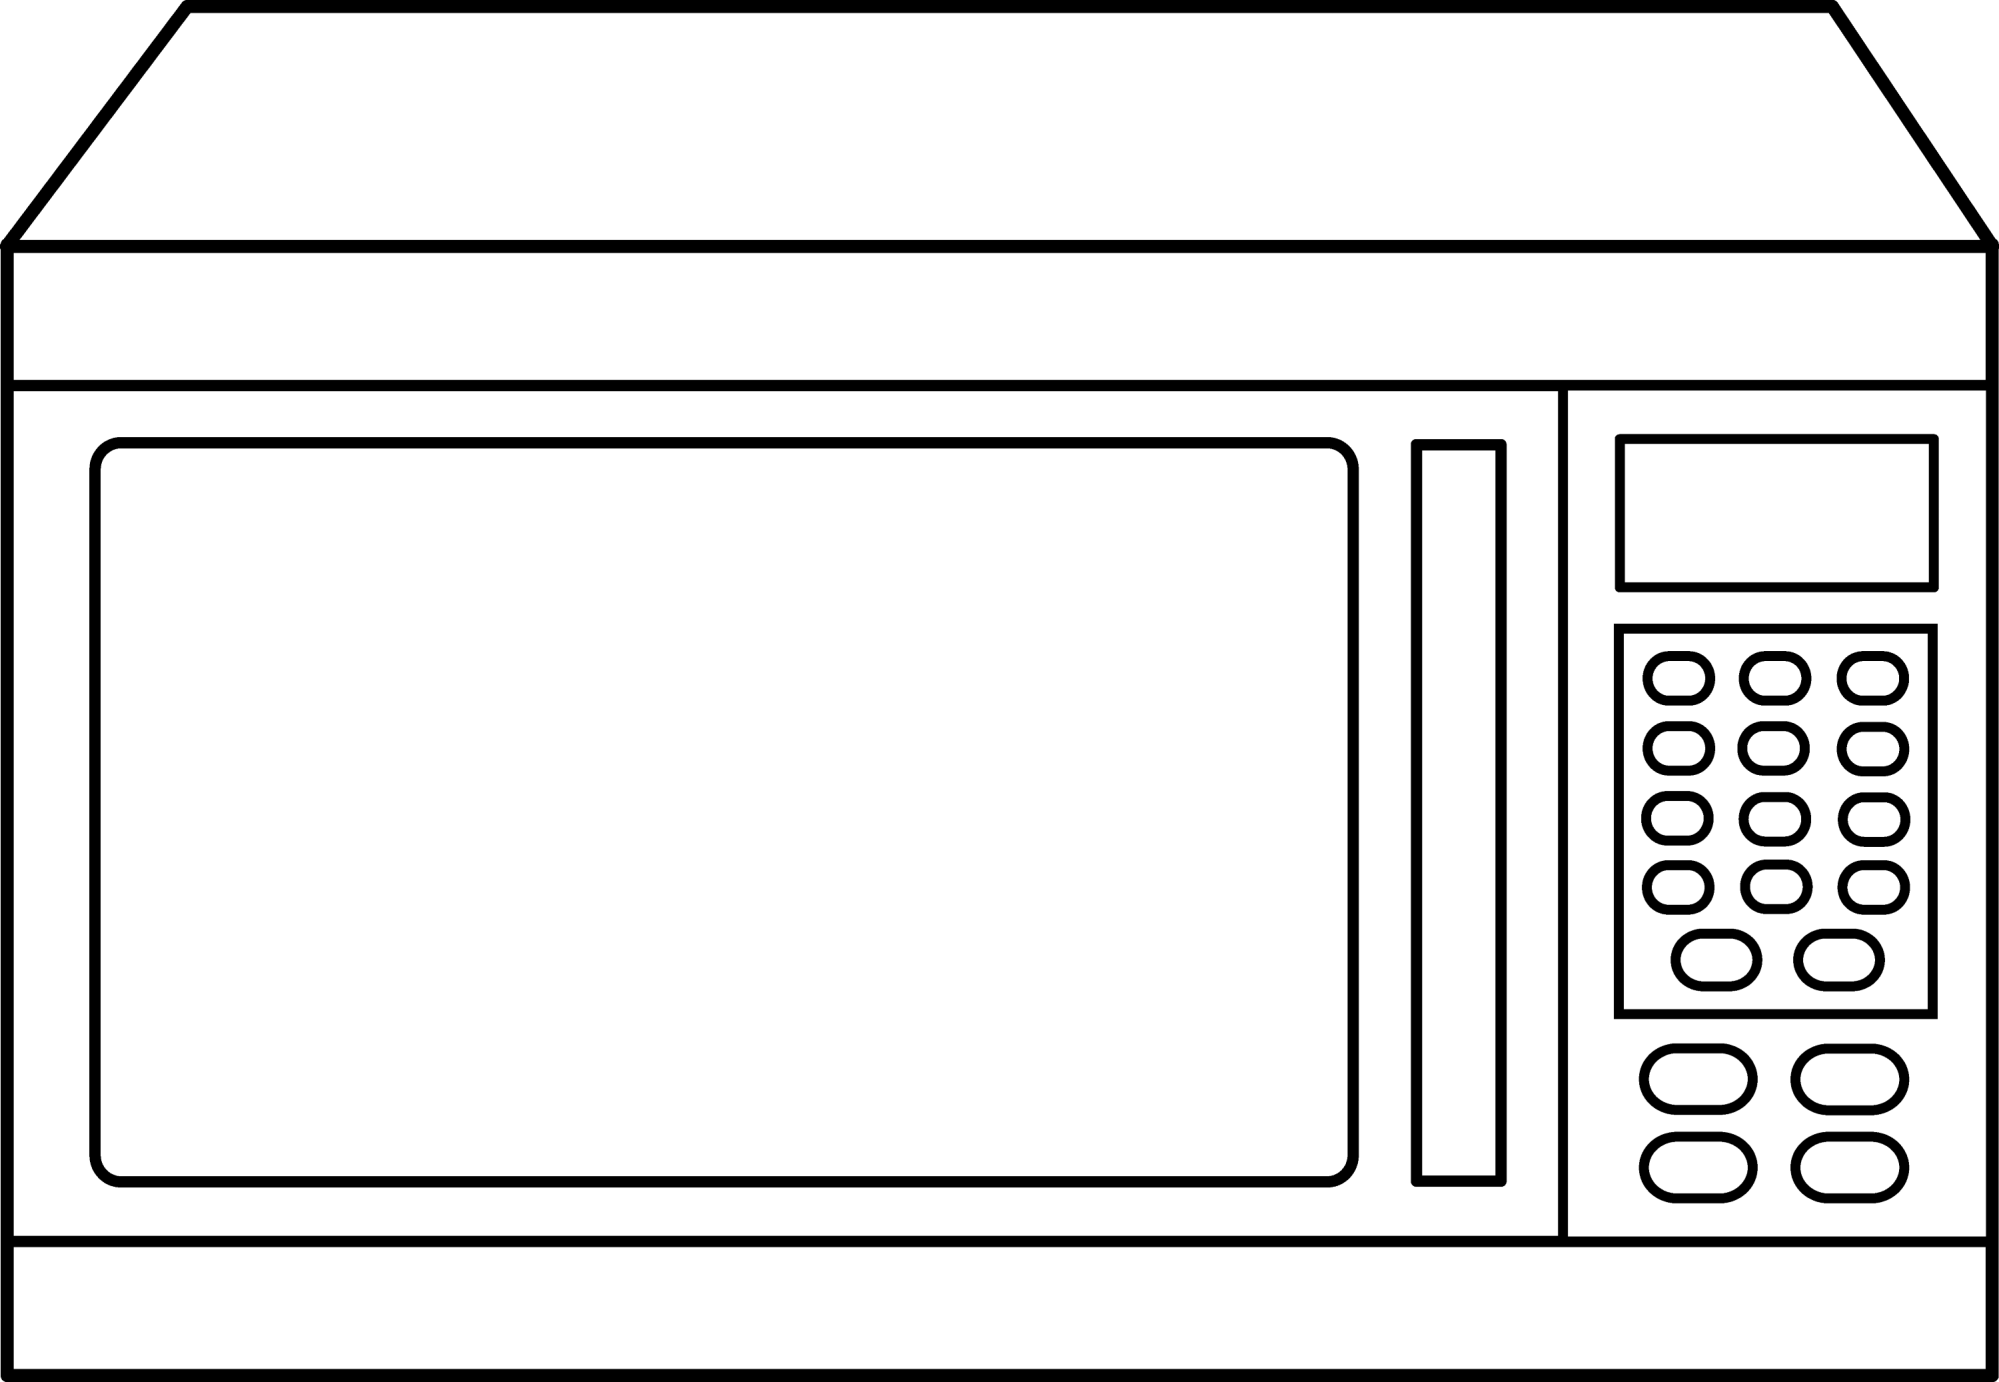 hight resolution of microwave oven outline